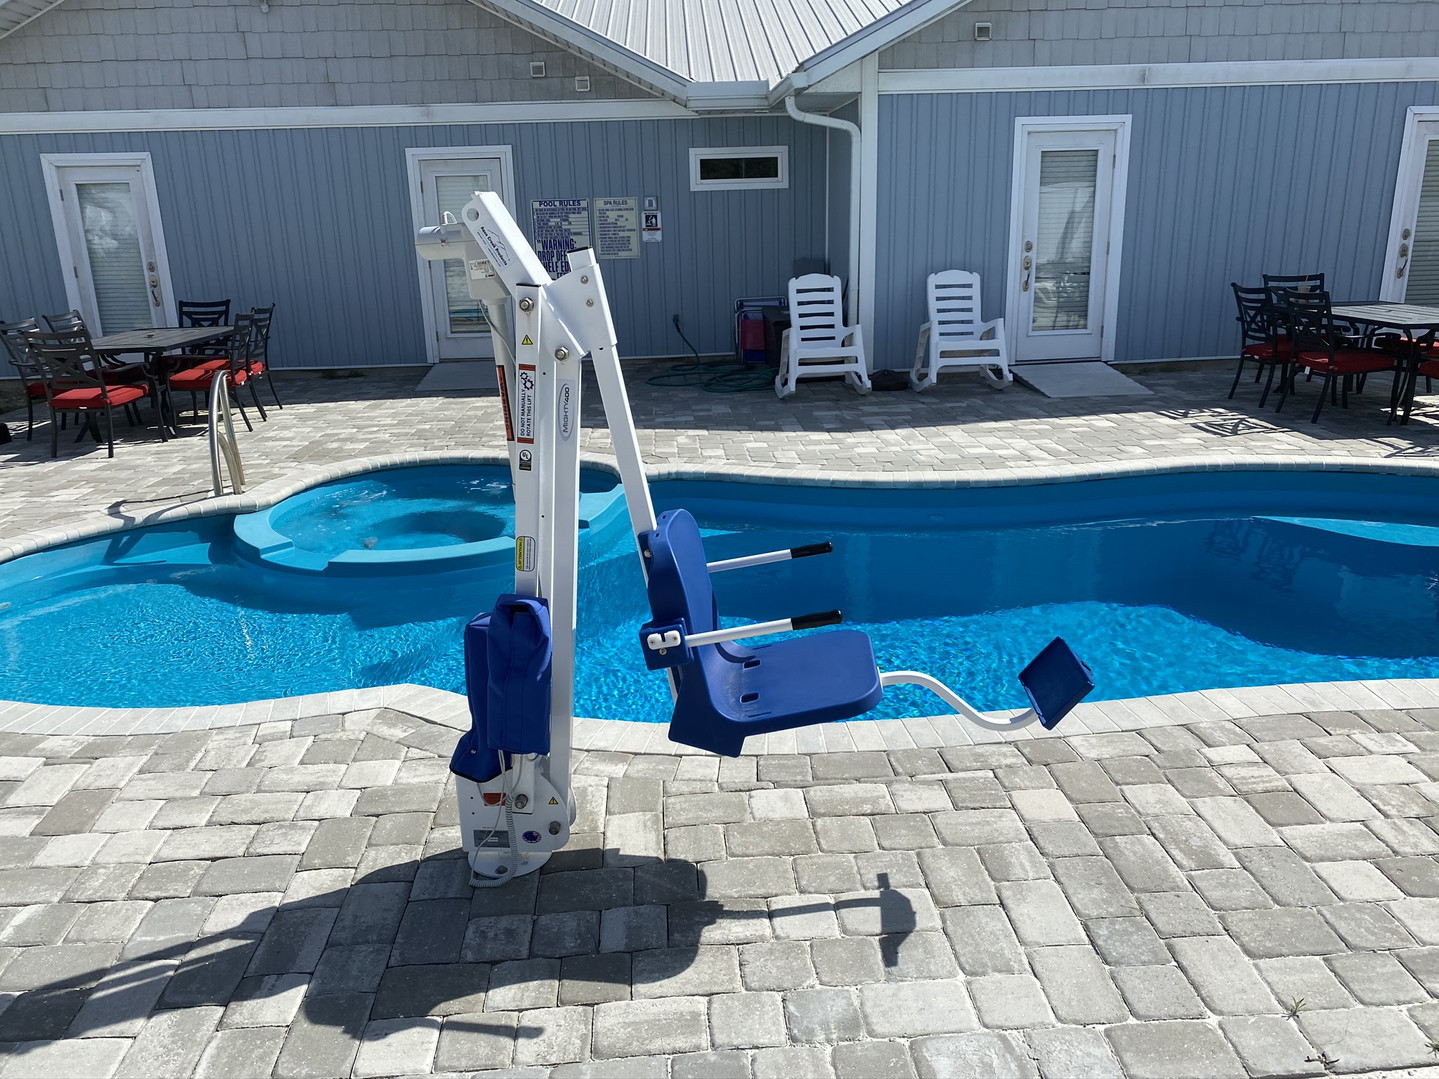 Chair lift to assist with pool access